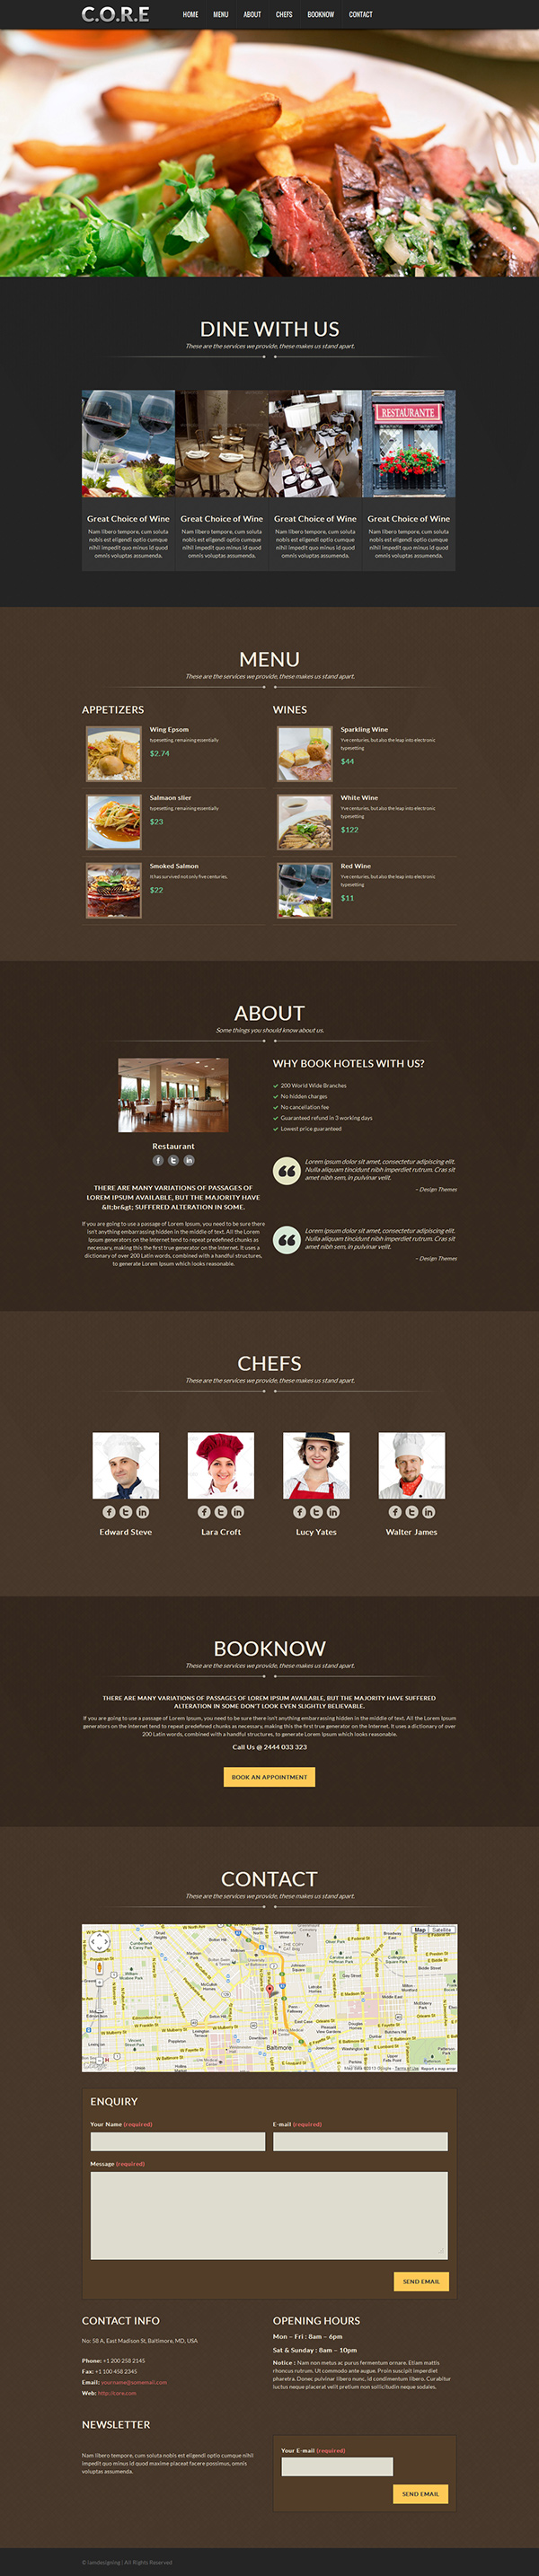 Core responsive one page wordpress theme on behance for Page 3 salon coimbatore